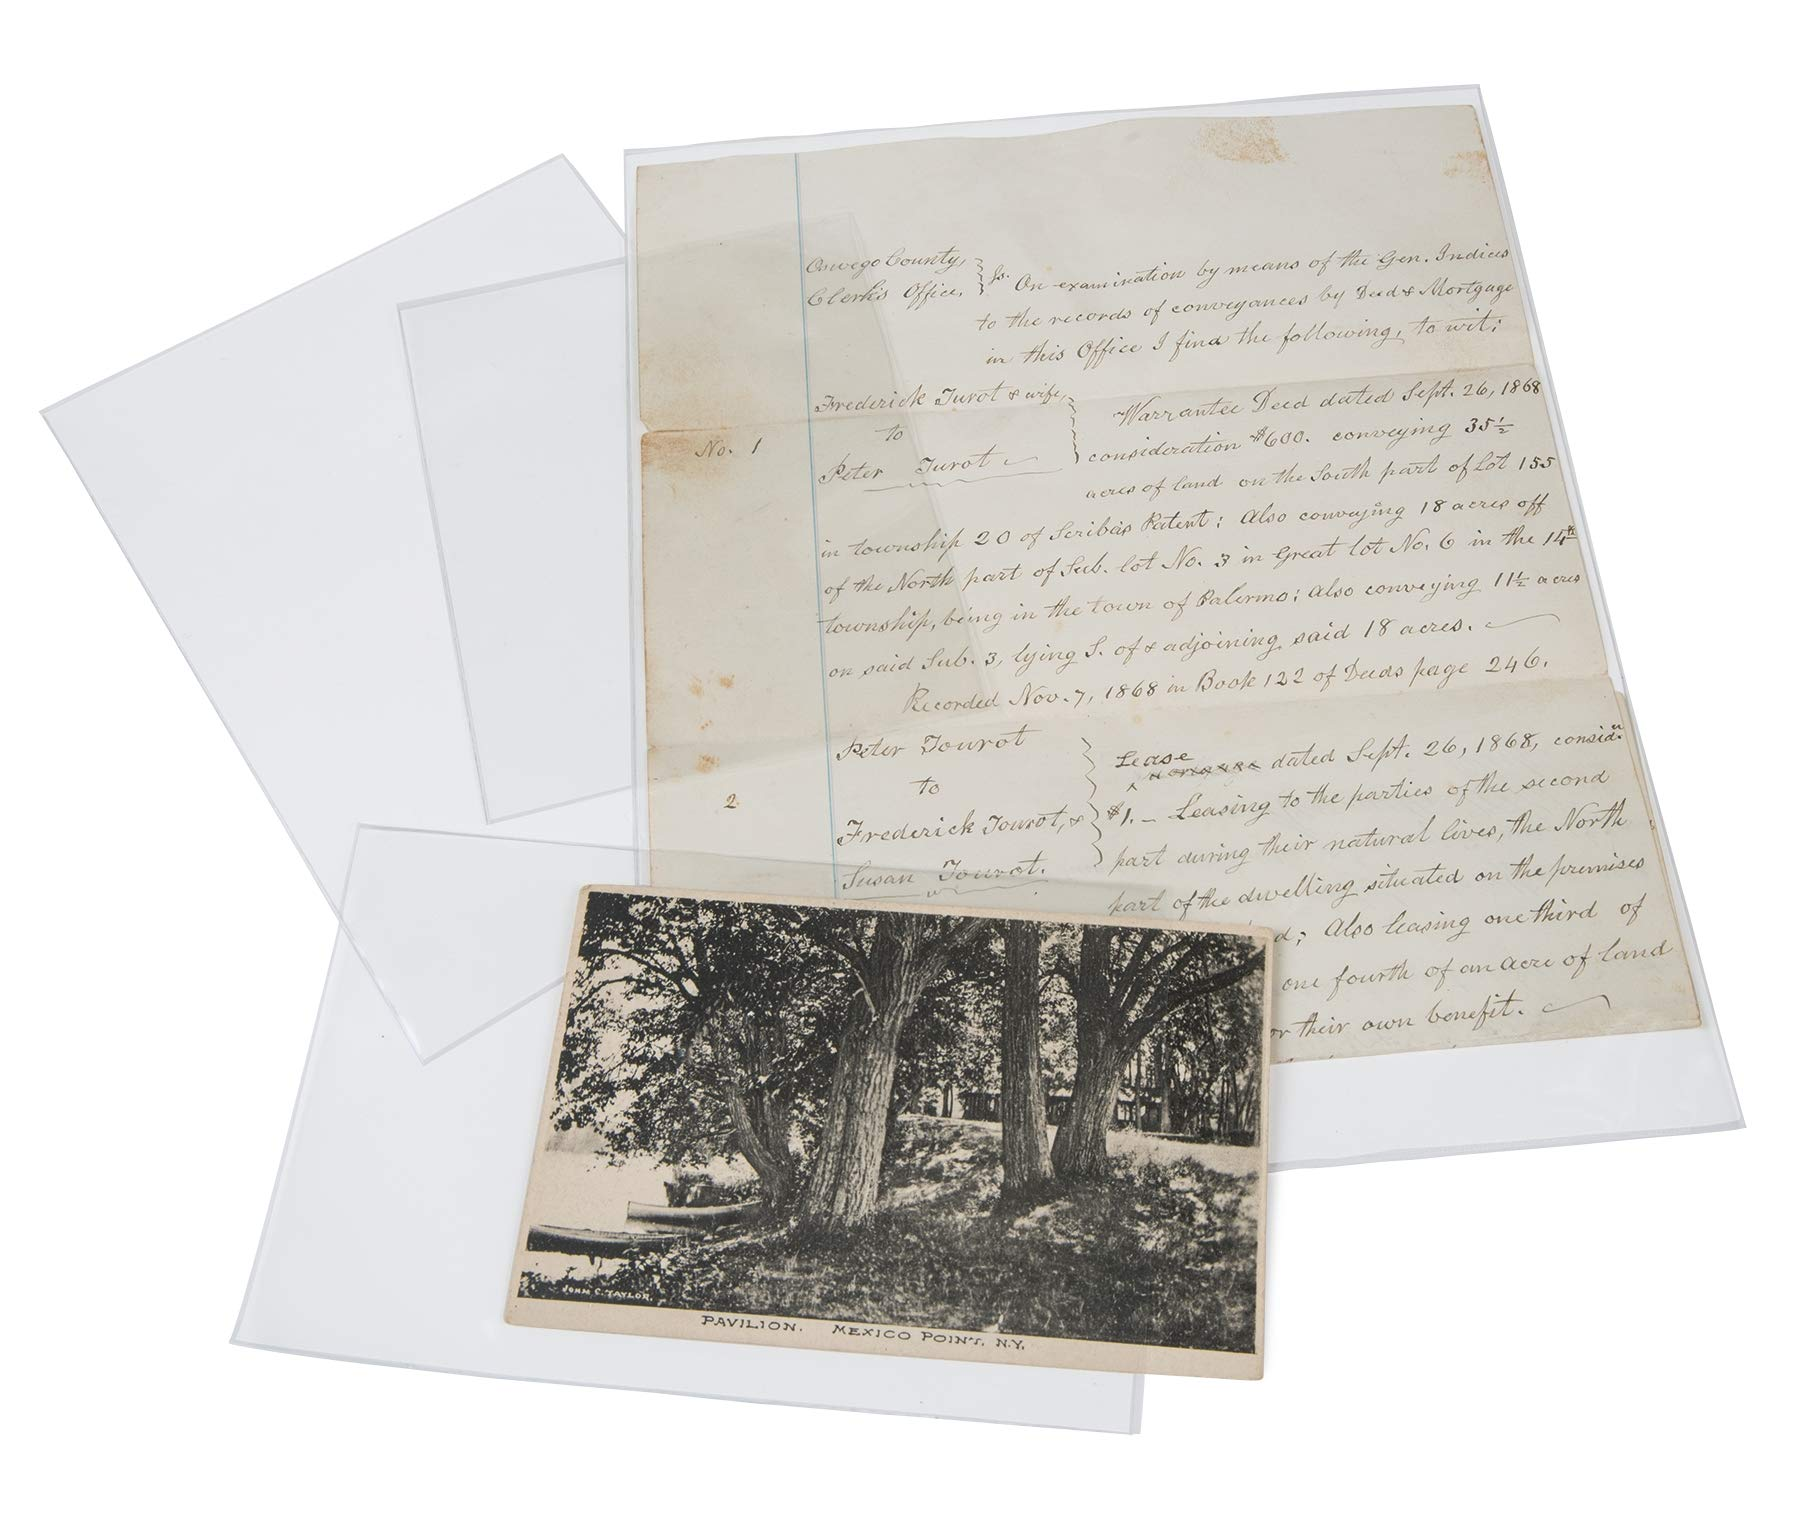 Gaylord Archival Polypropylene Preservation Sleeves Variety Pack by Gaylord Archival (Image #1)